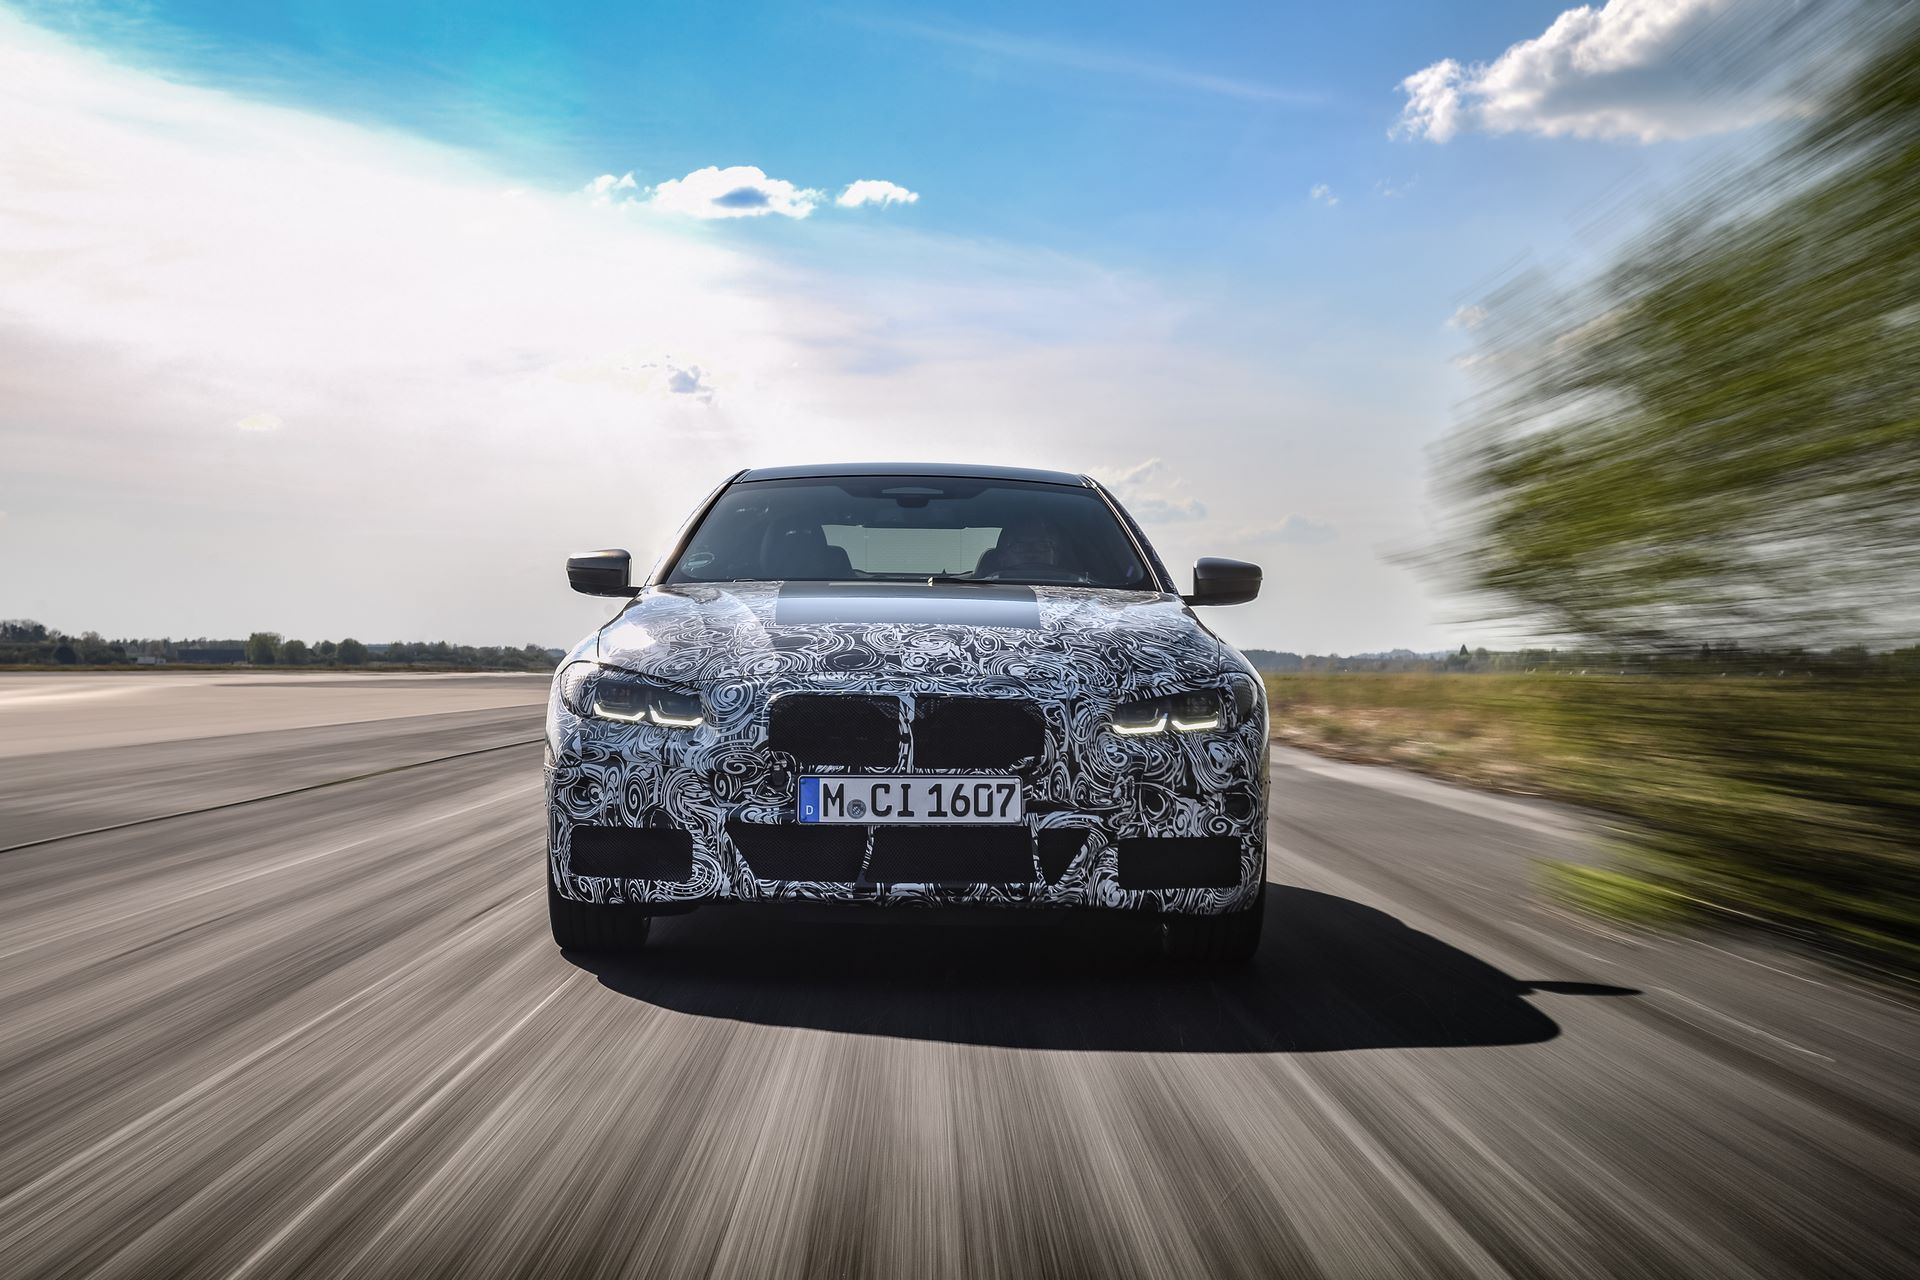 BMW-4-Series-M440i-camouflaged-1